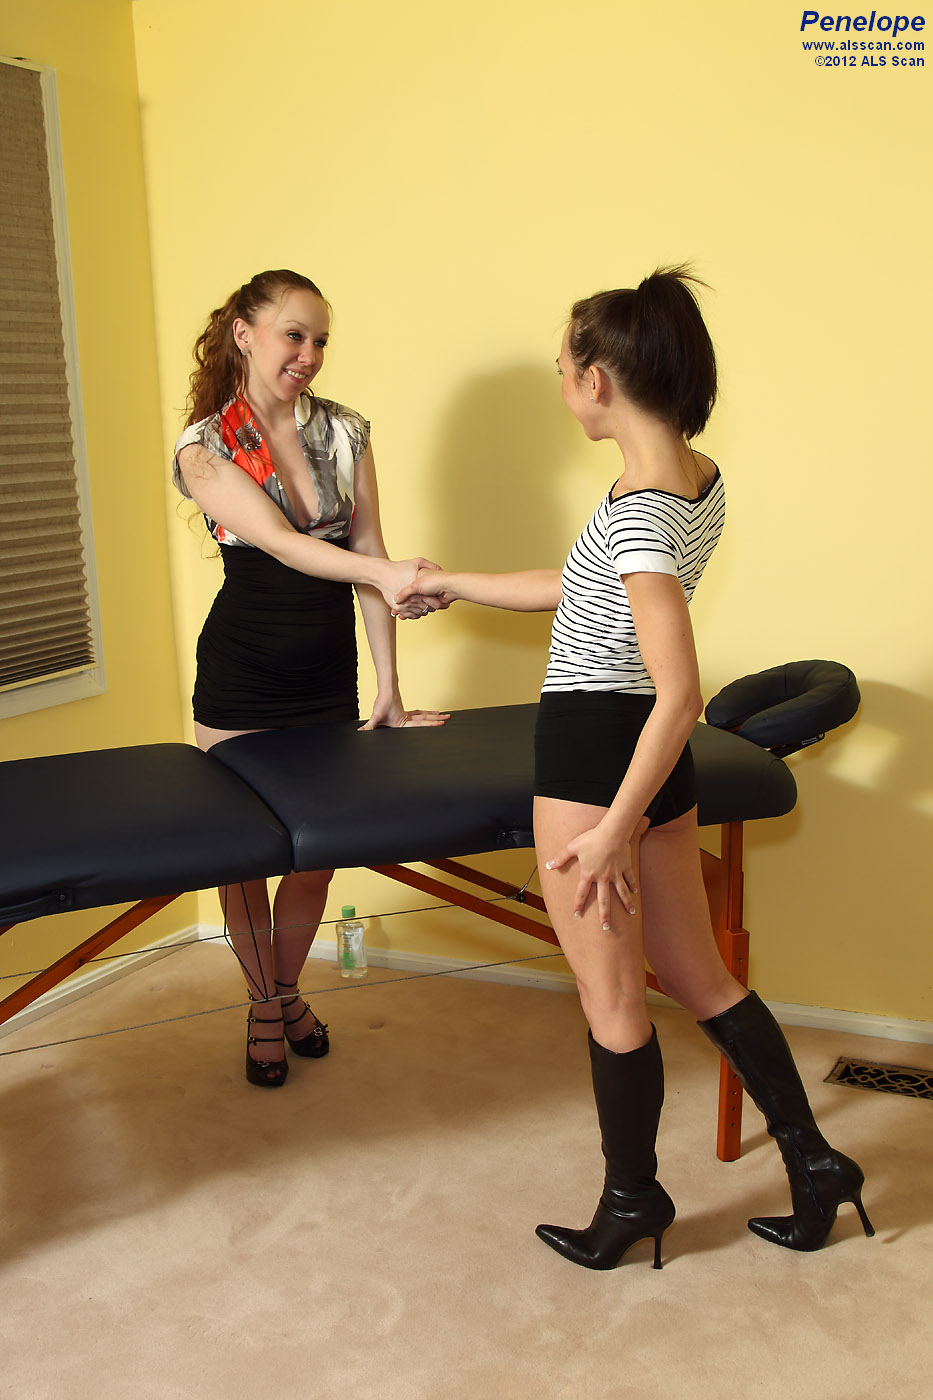 Penelope - Penelope Gets an Erotic Massage from Leighlani